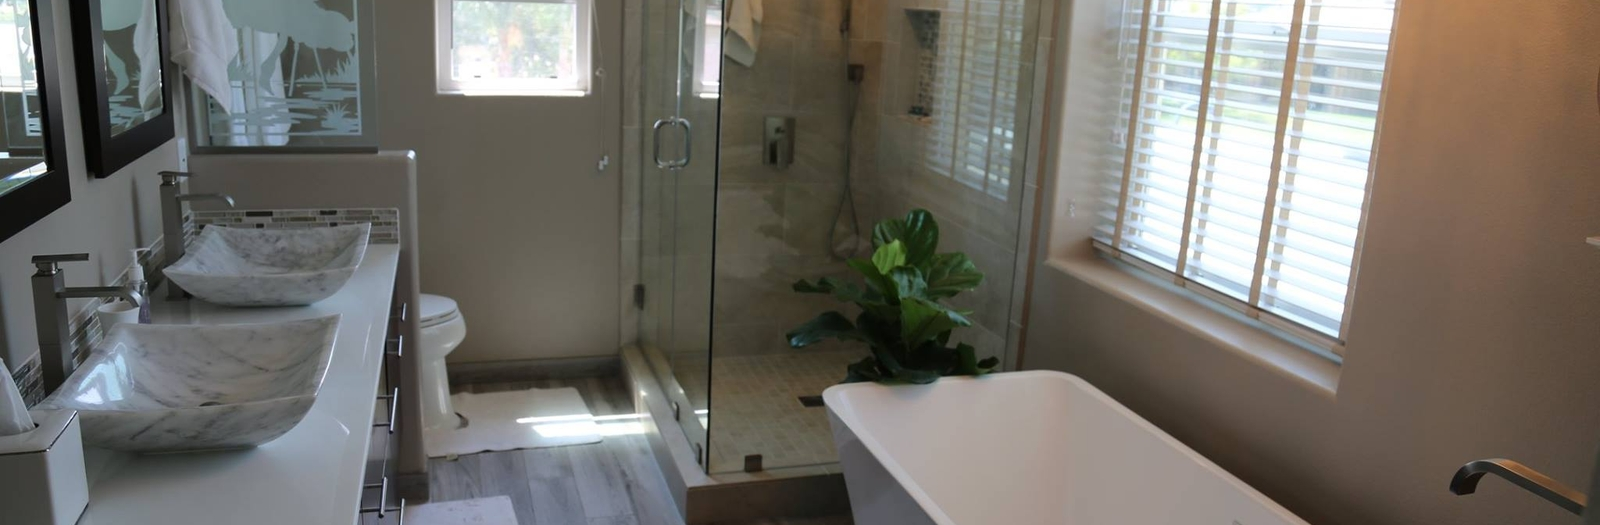 Modern Bathroom with frosted glass partition